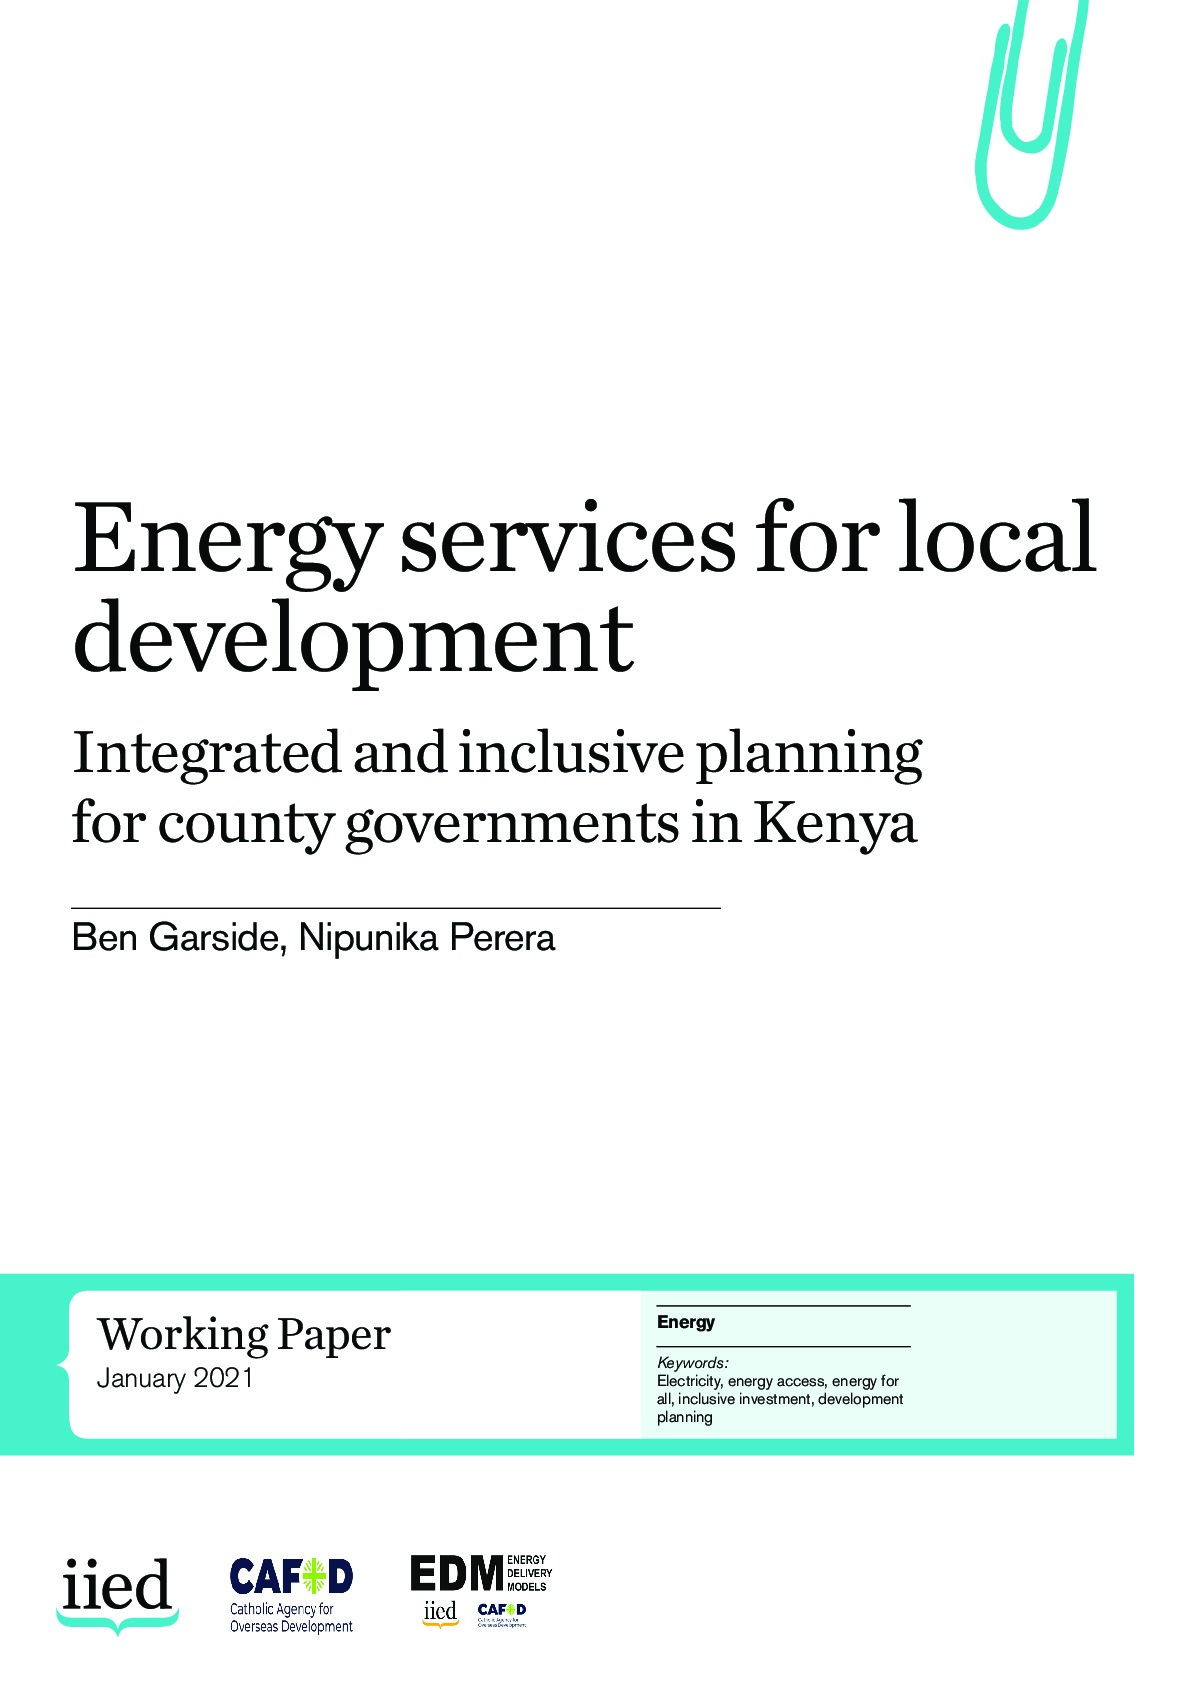 Energy services for local development: integrated and inclusive planning for county governments in Kenya